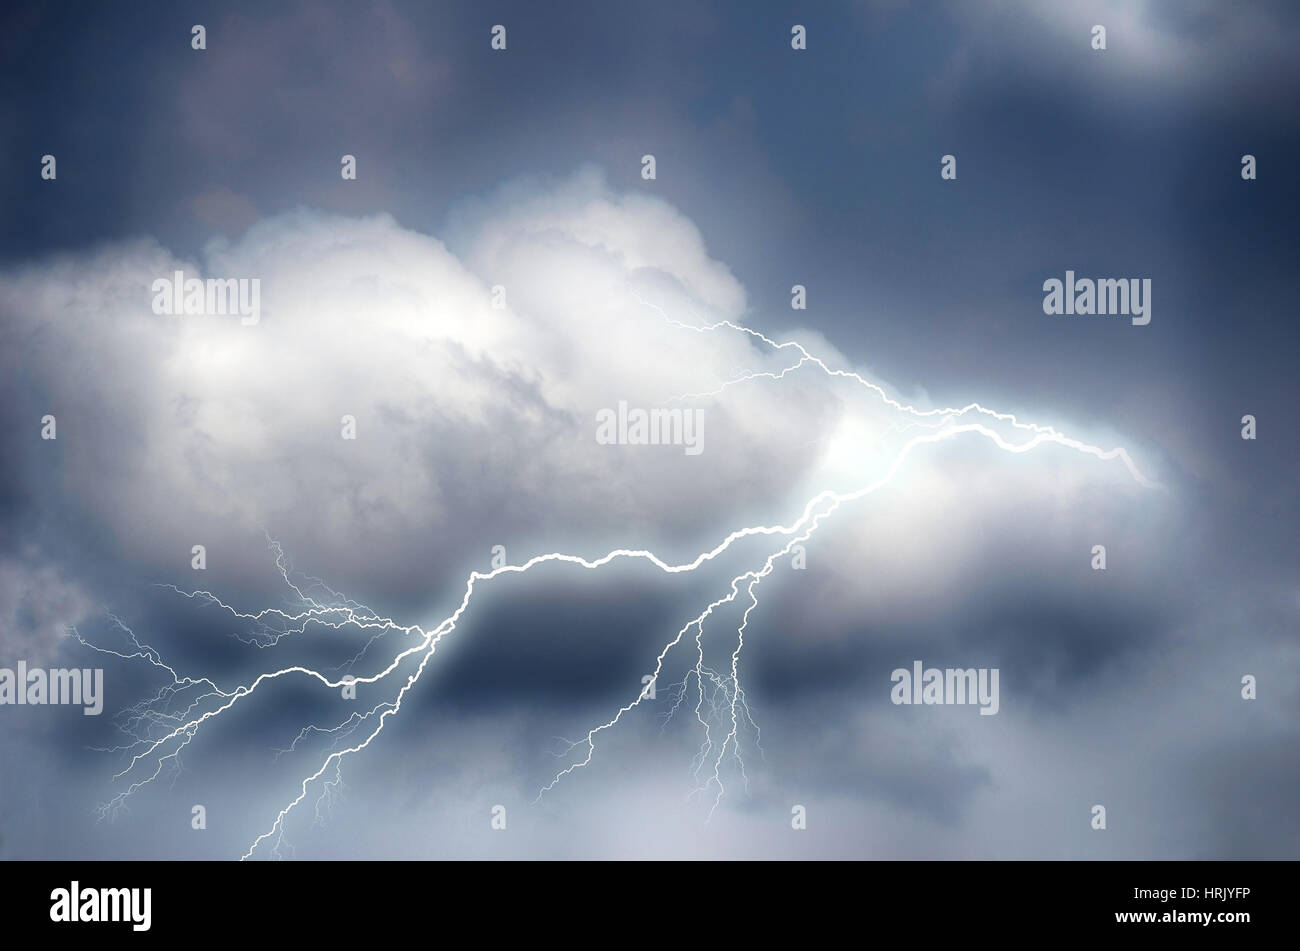 Cloudy Sky with white and black cloud, create darkness. - Stock Image